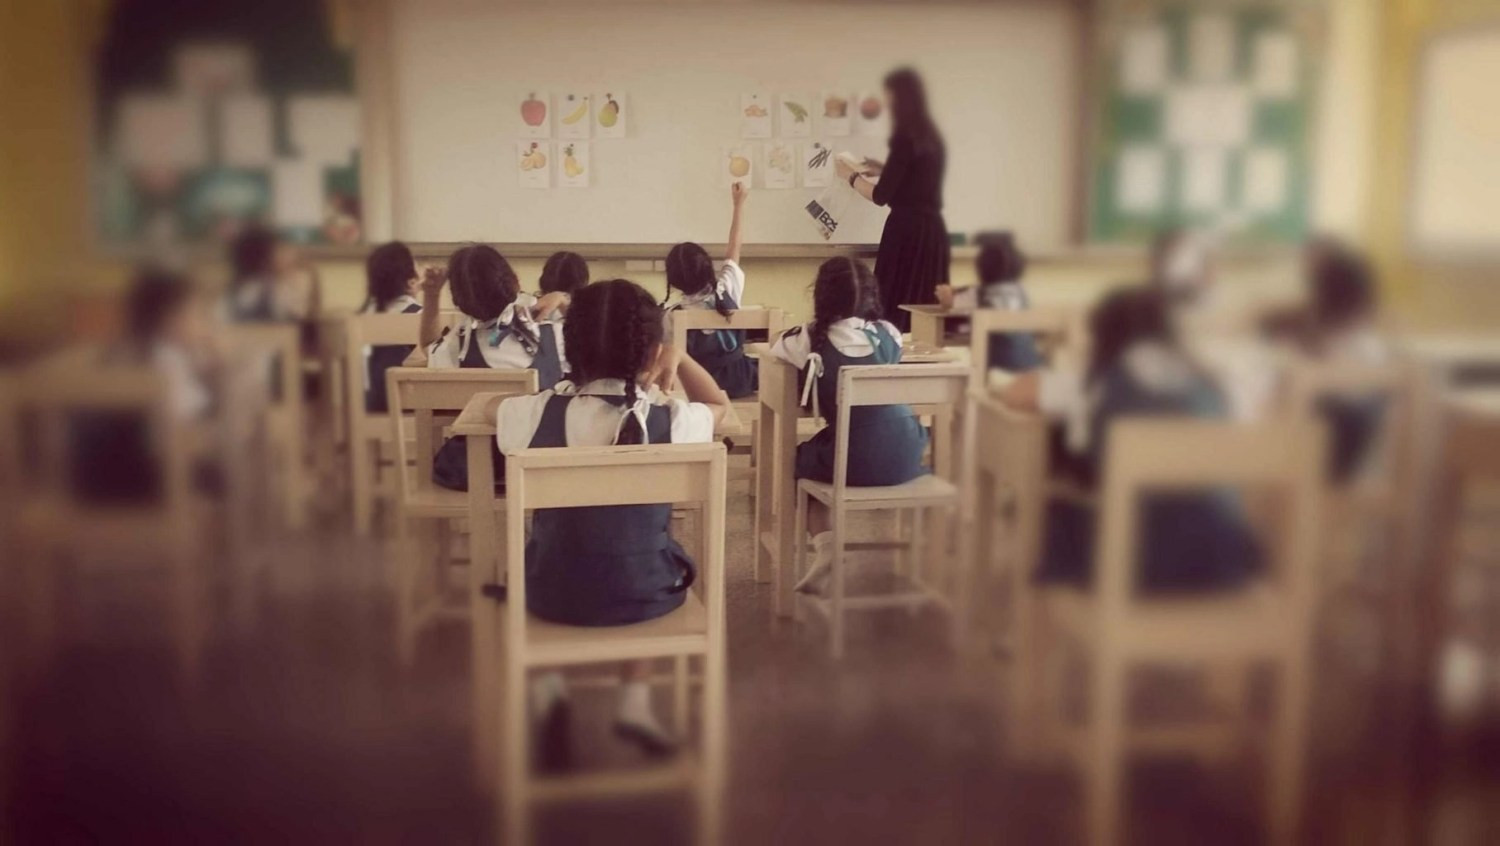 Security Window Film Helps Keep Kids Safe and Improves School Safety